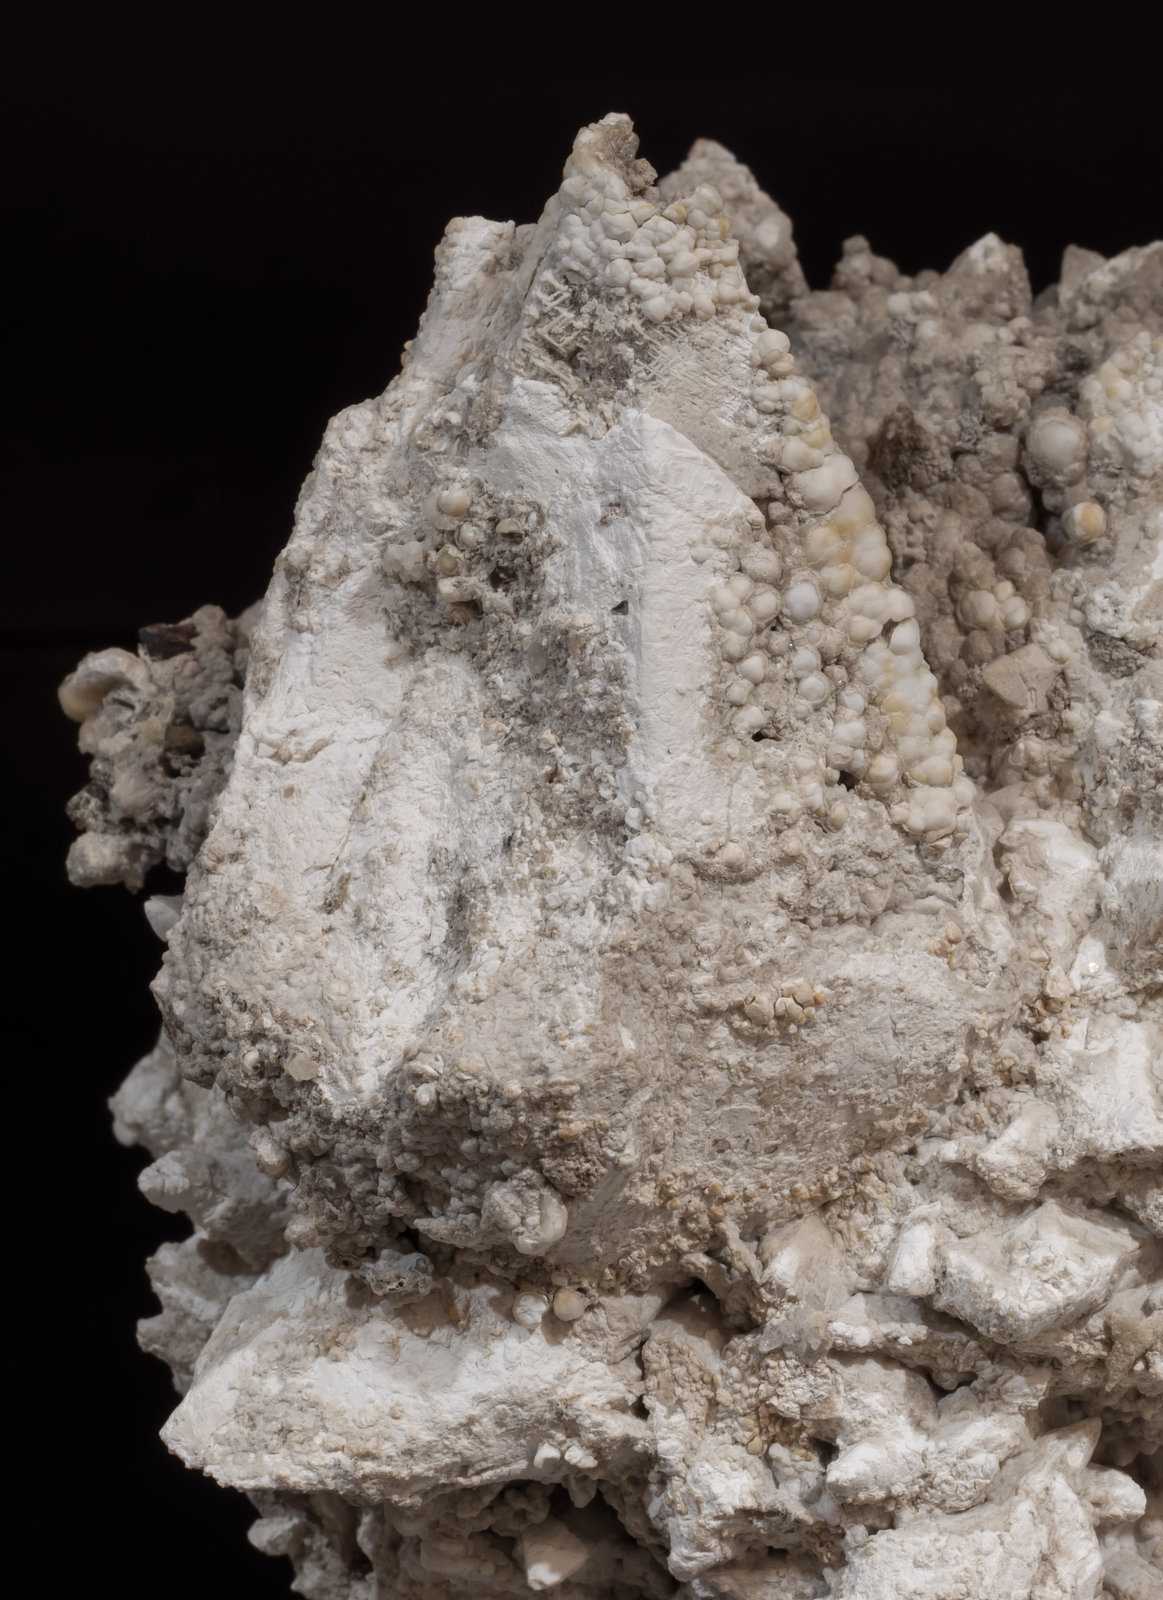 specimens/s_imagesAF2/Smithsonite-NF56AF2d.jpg